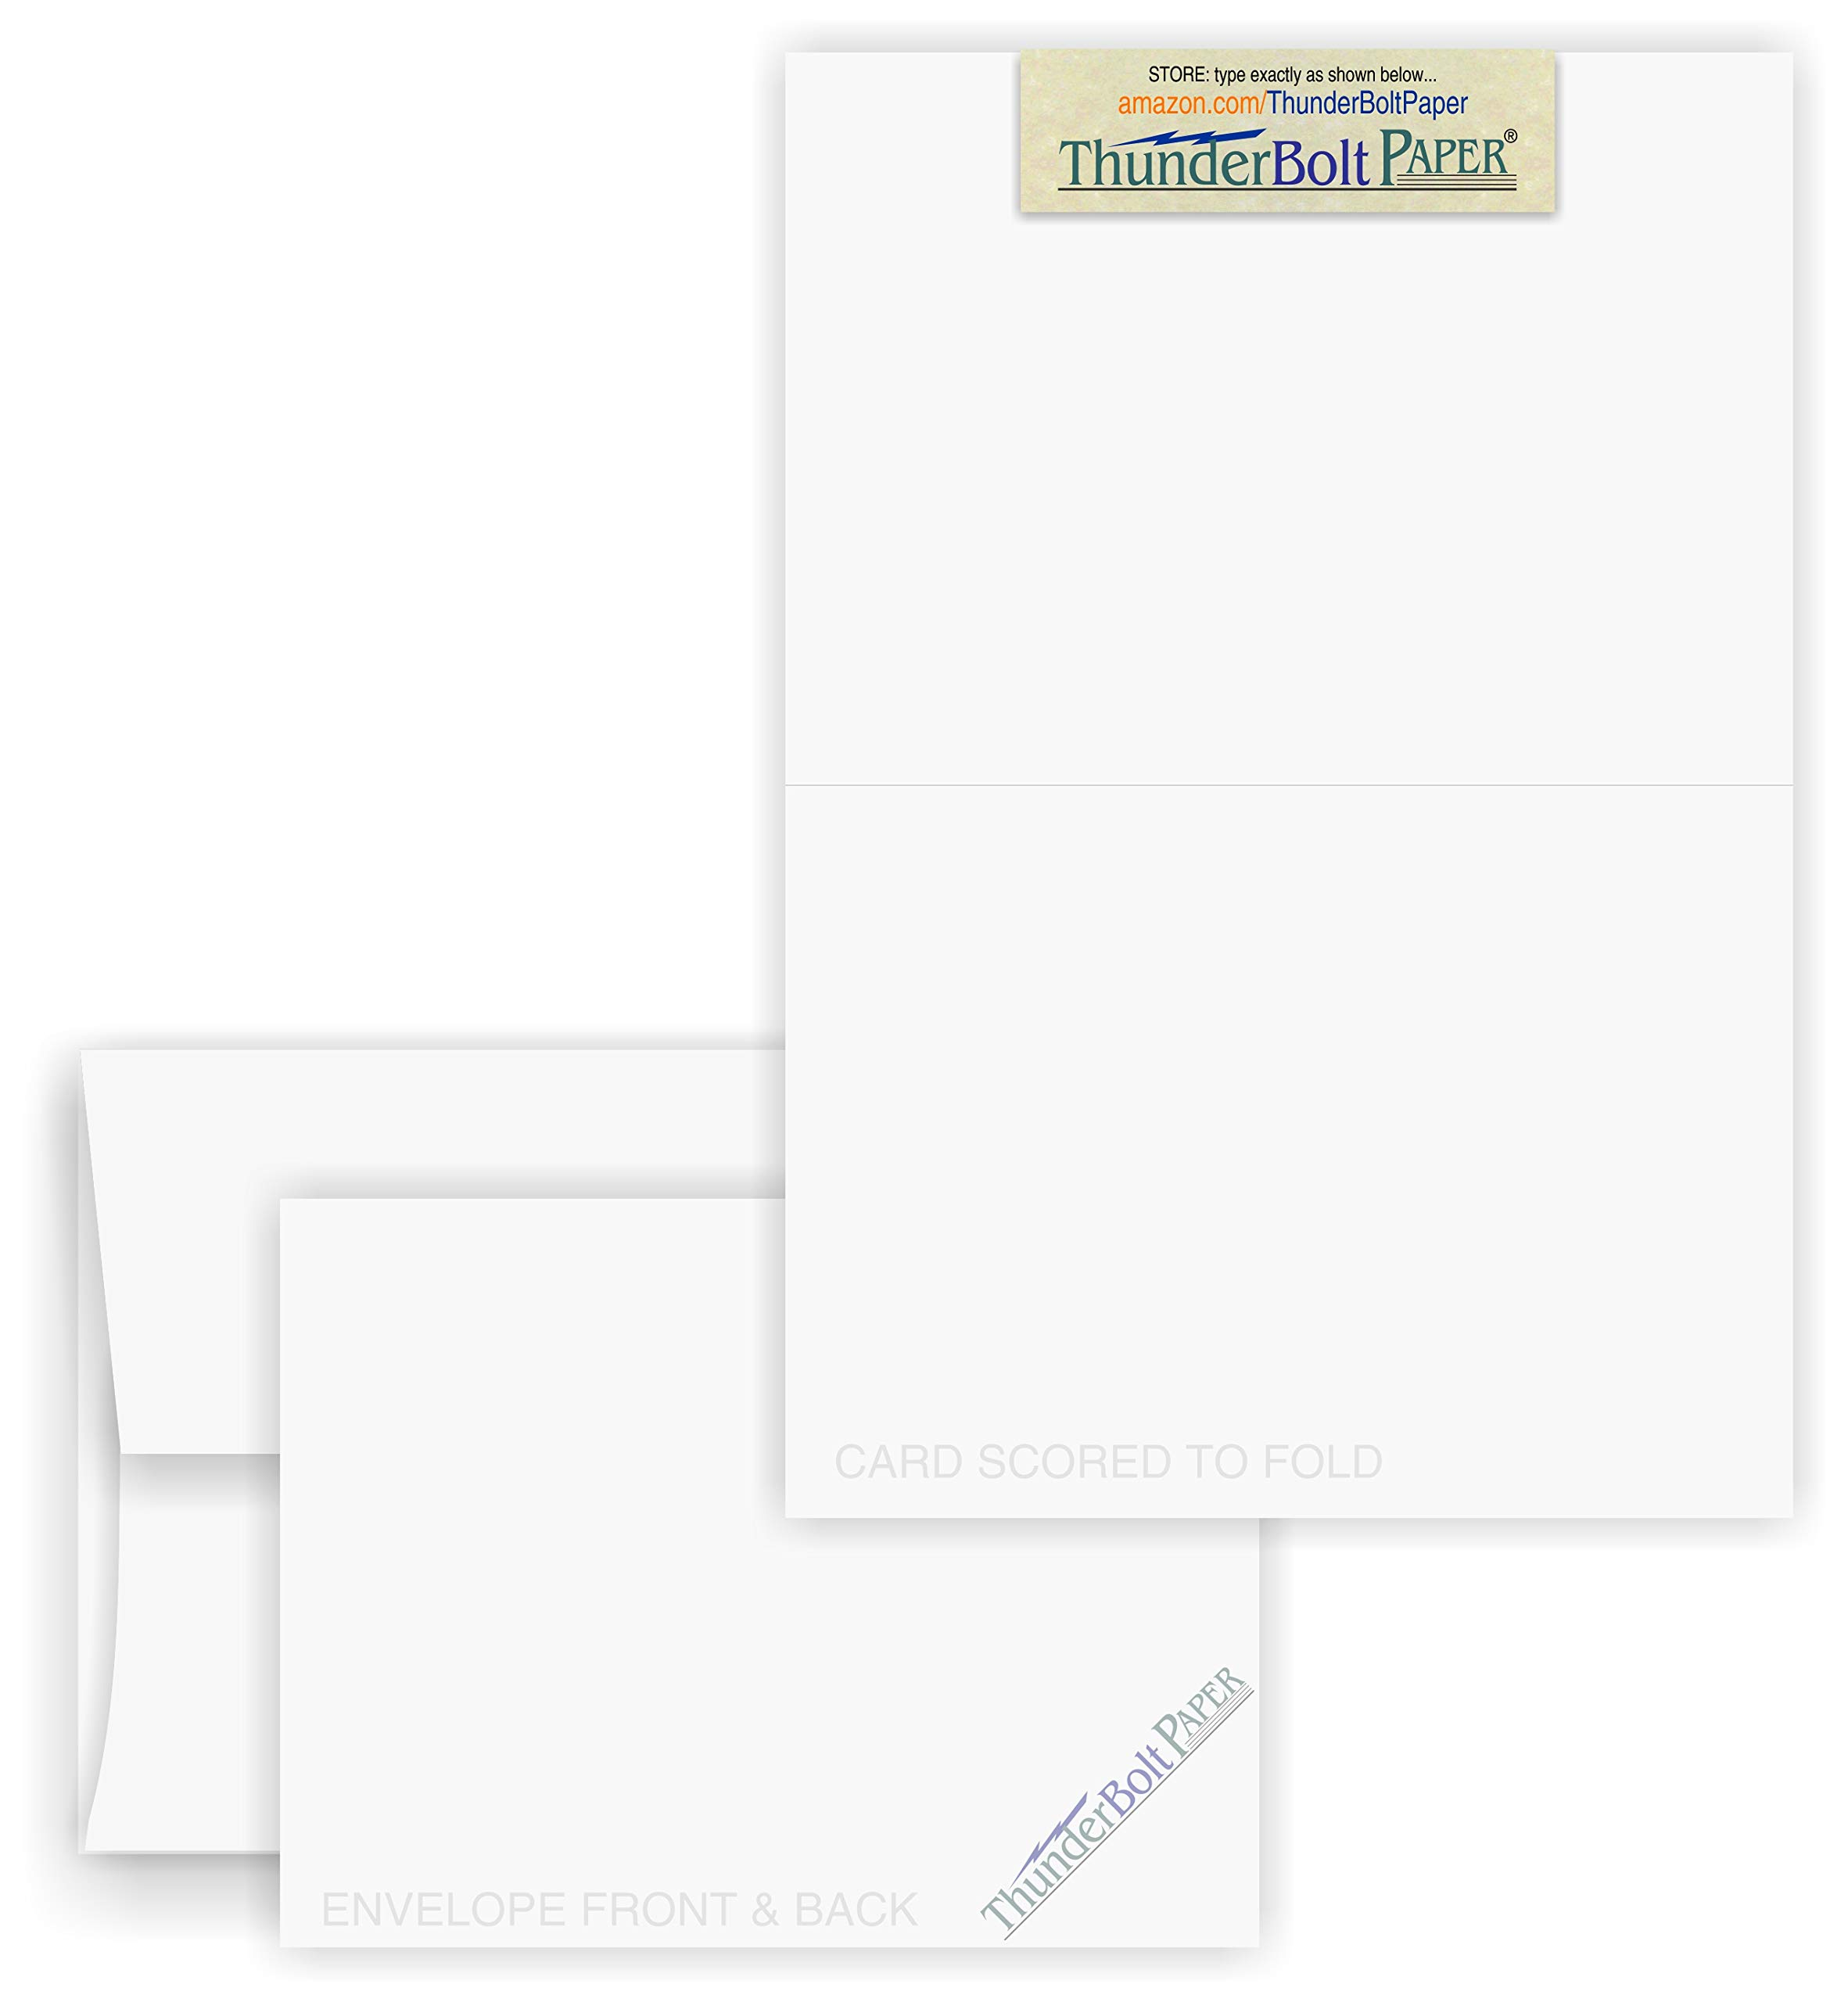 5X7 Folded Size with A-7 Envelopes - Smooth Bright White - 50 Sets (7X10 Cards Scored to Fold in Half) Blank Pack, Smooth Finish -Invitations, Greetings, Thank Yous, Notes, Occasions - 80# Cardstock